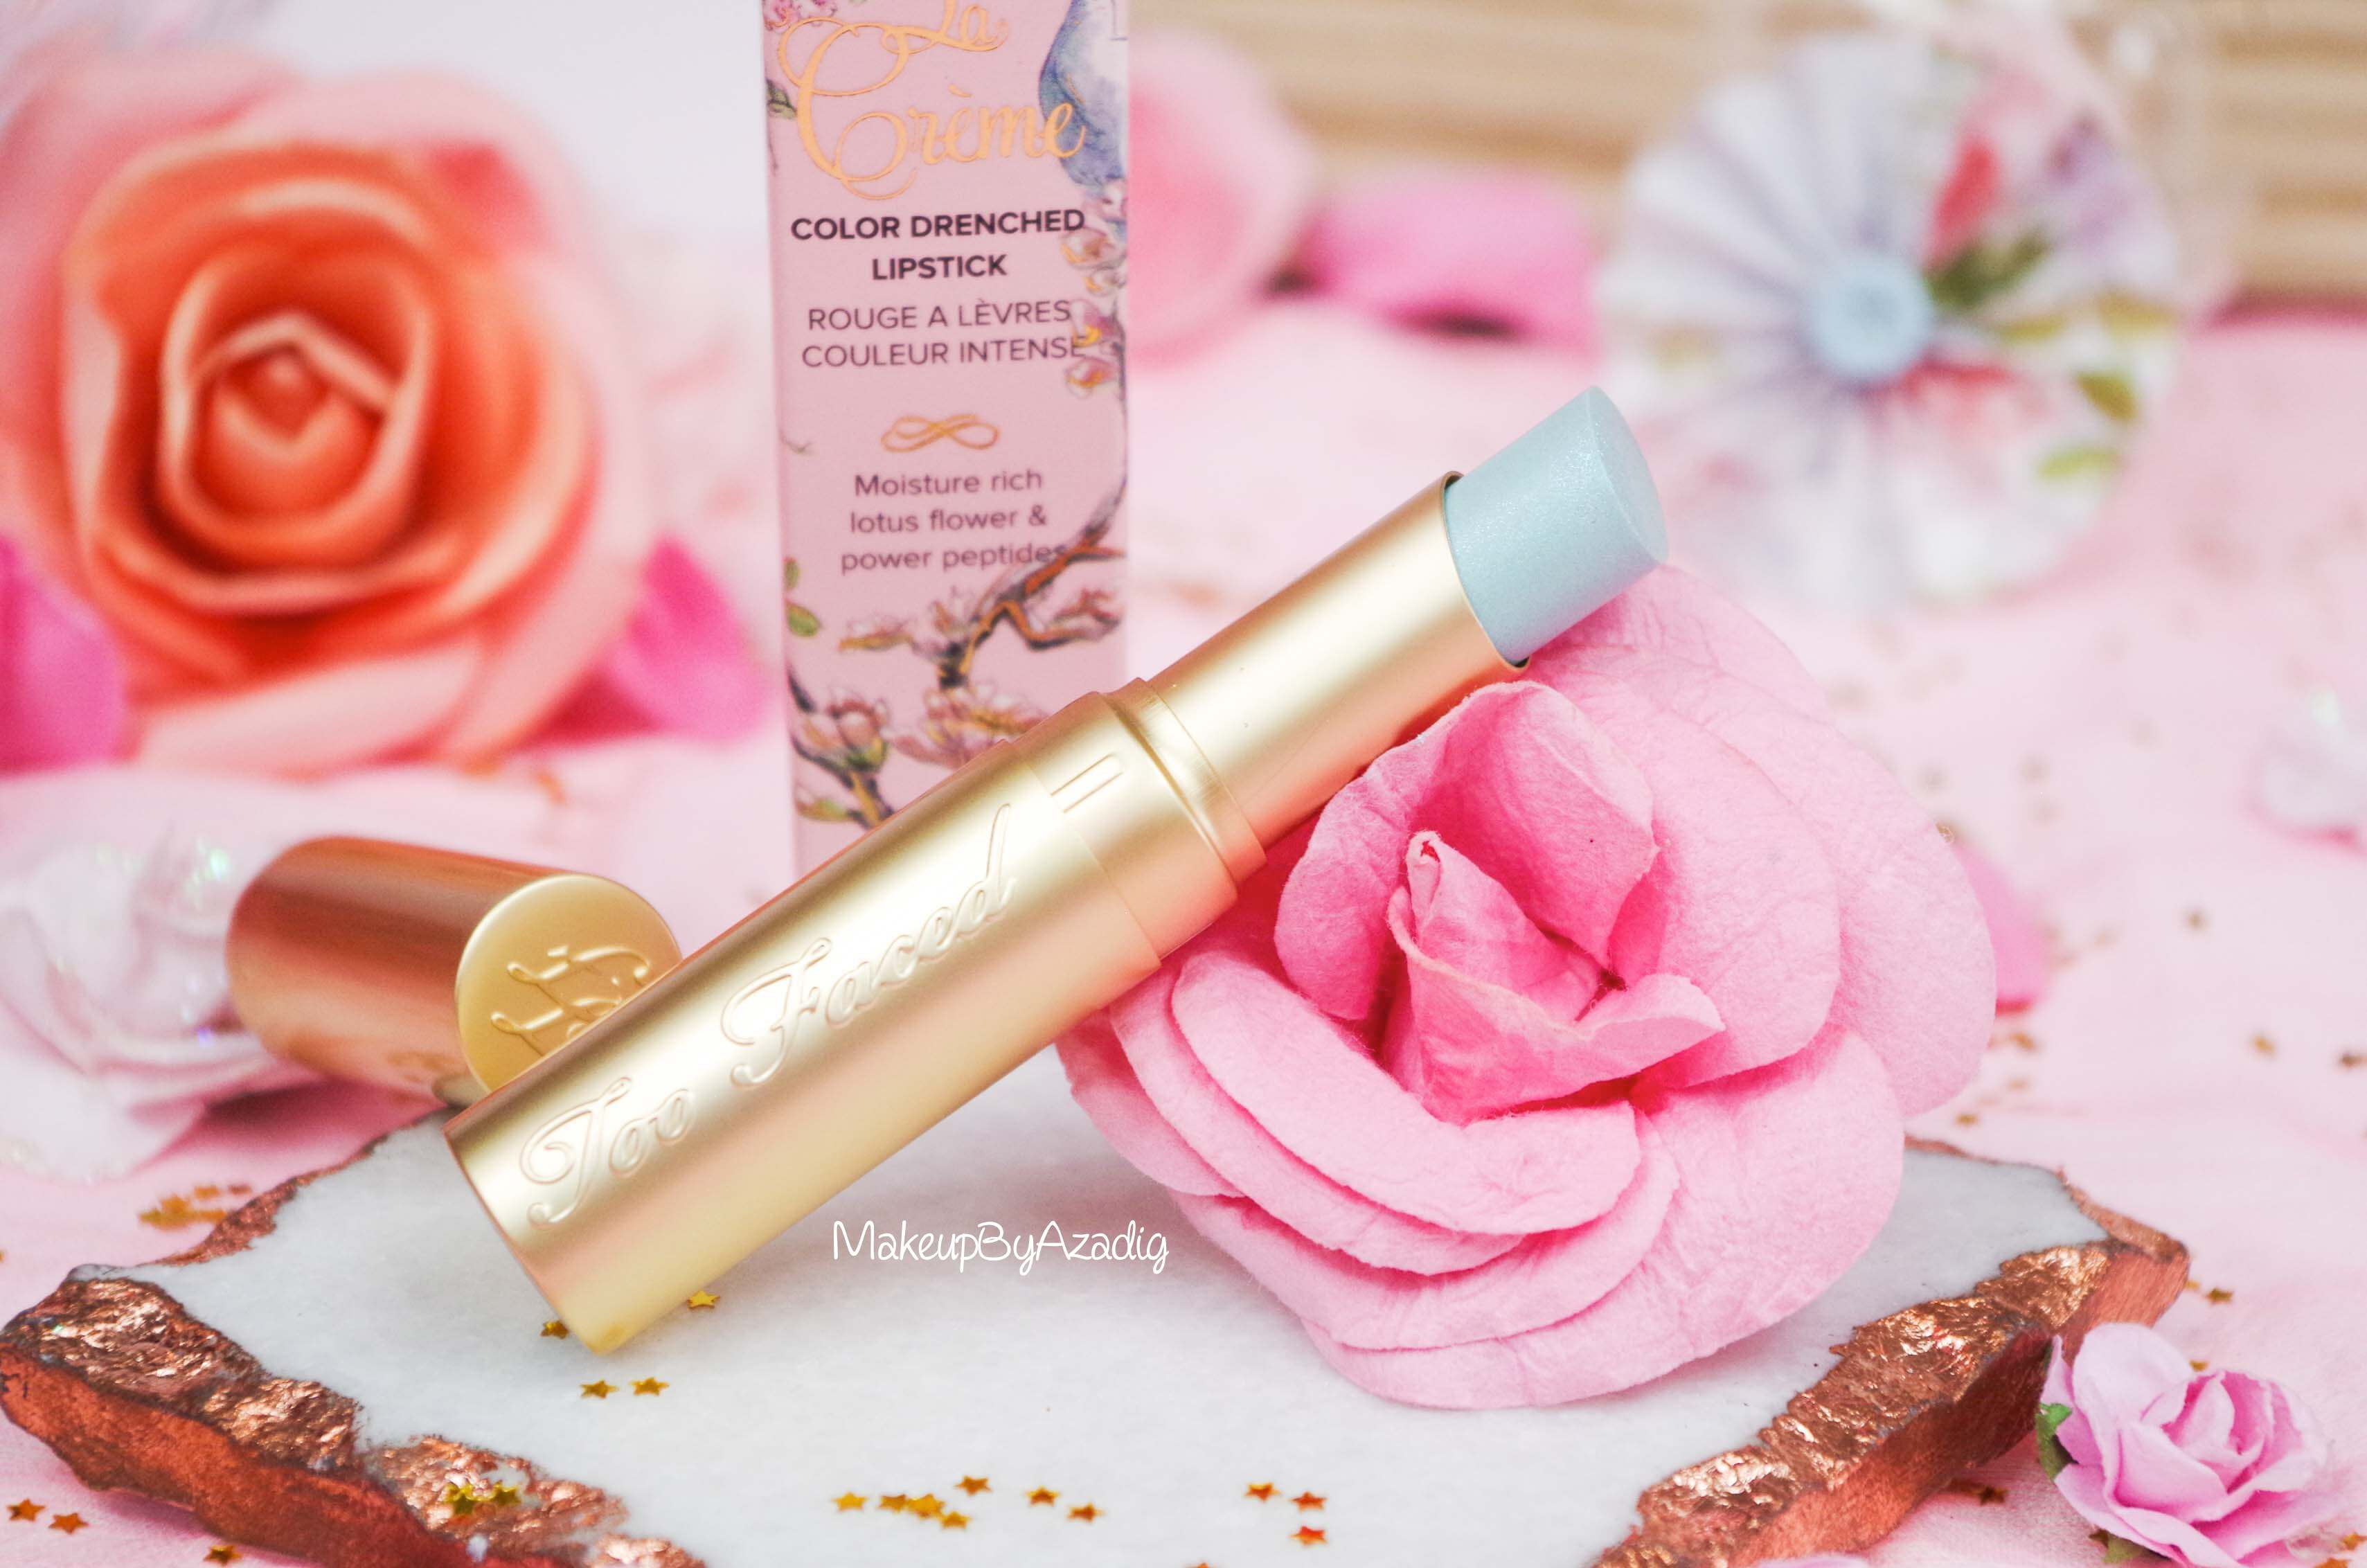 rouge-levres-creme-too-faced-unicorn-tears-magique-makeupbyazadig-swatch-avis-prix-revue-sephora-influencer